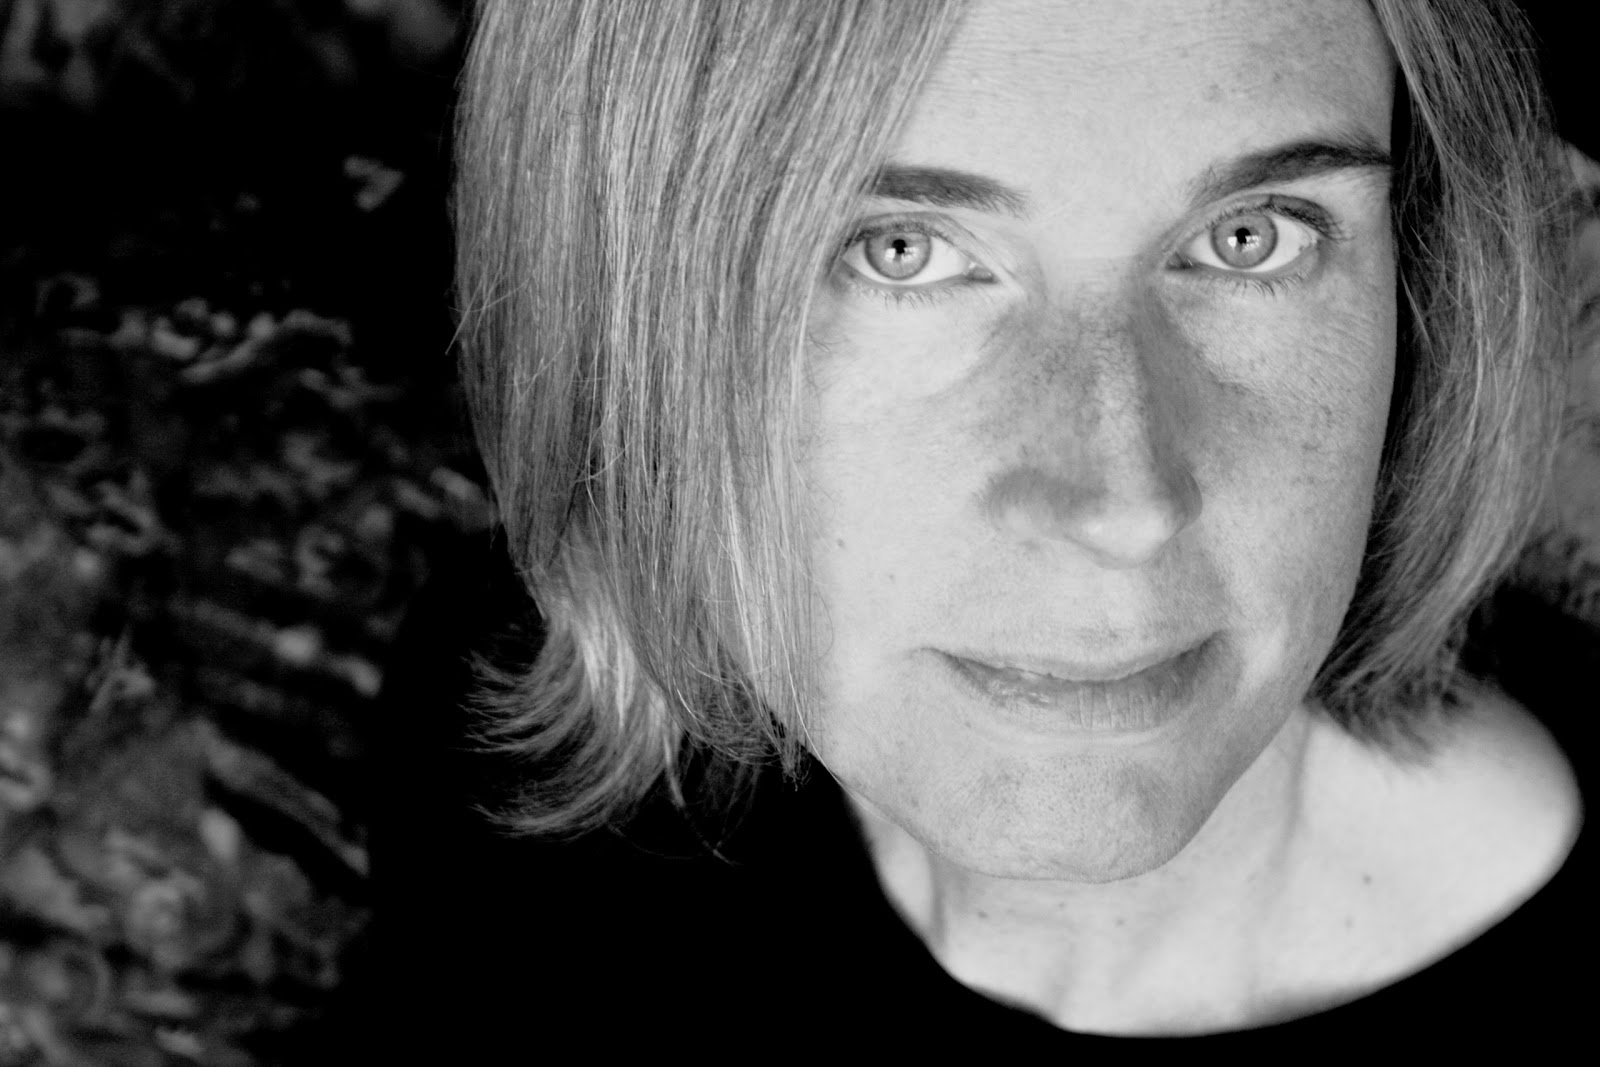 Rob mclennans blog 12 or 20 second series questions with susan susan steudel is a vancouver poet she is the recipient of several awards for her poetry including the ralph gustafson prize a bliss carman poetry award fandeluxe Gallery